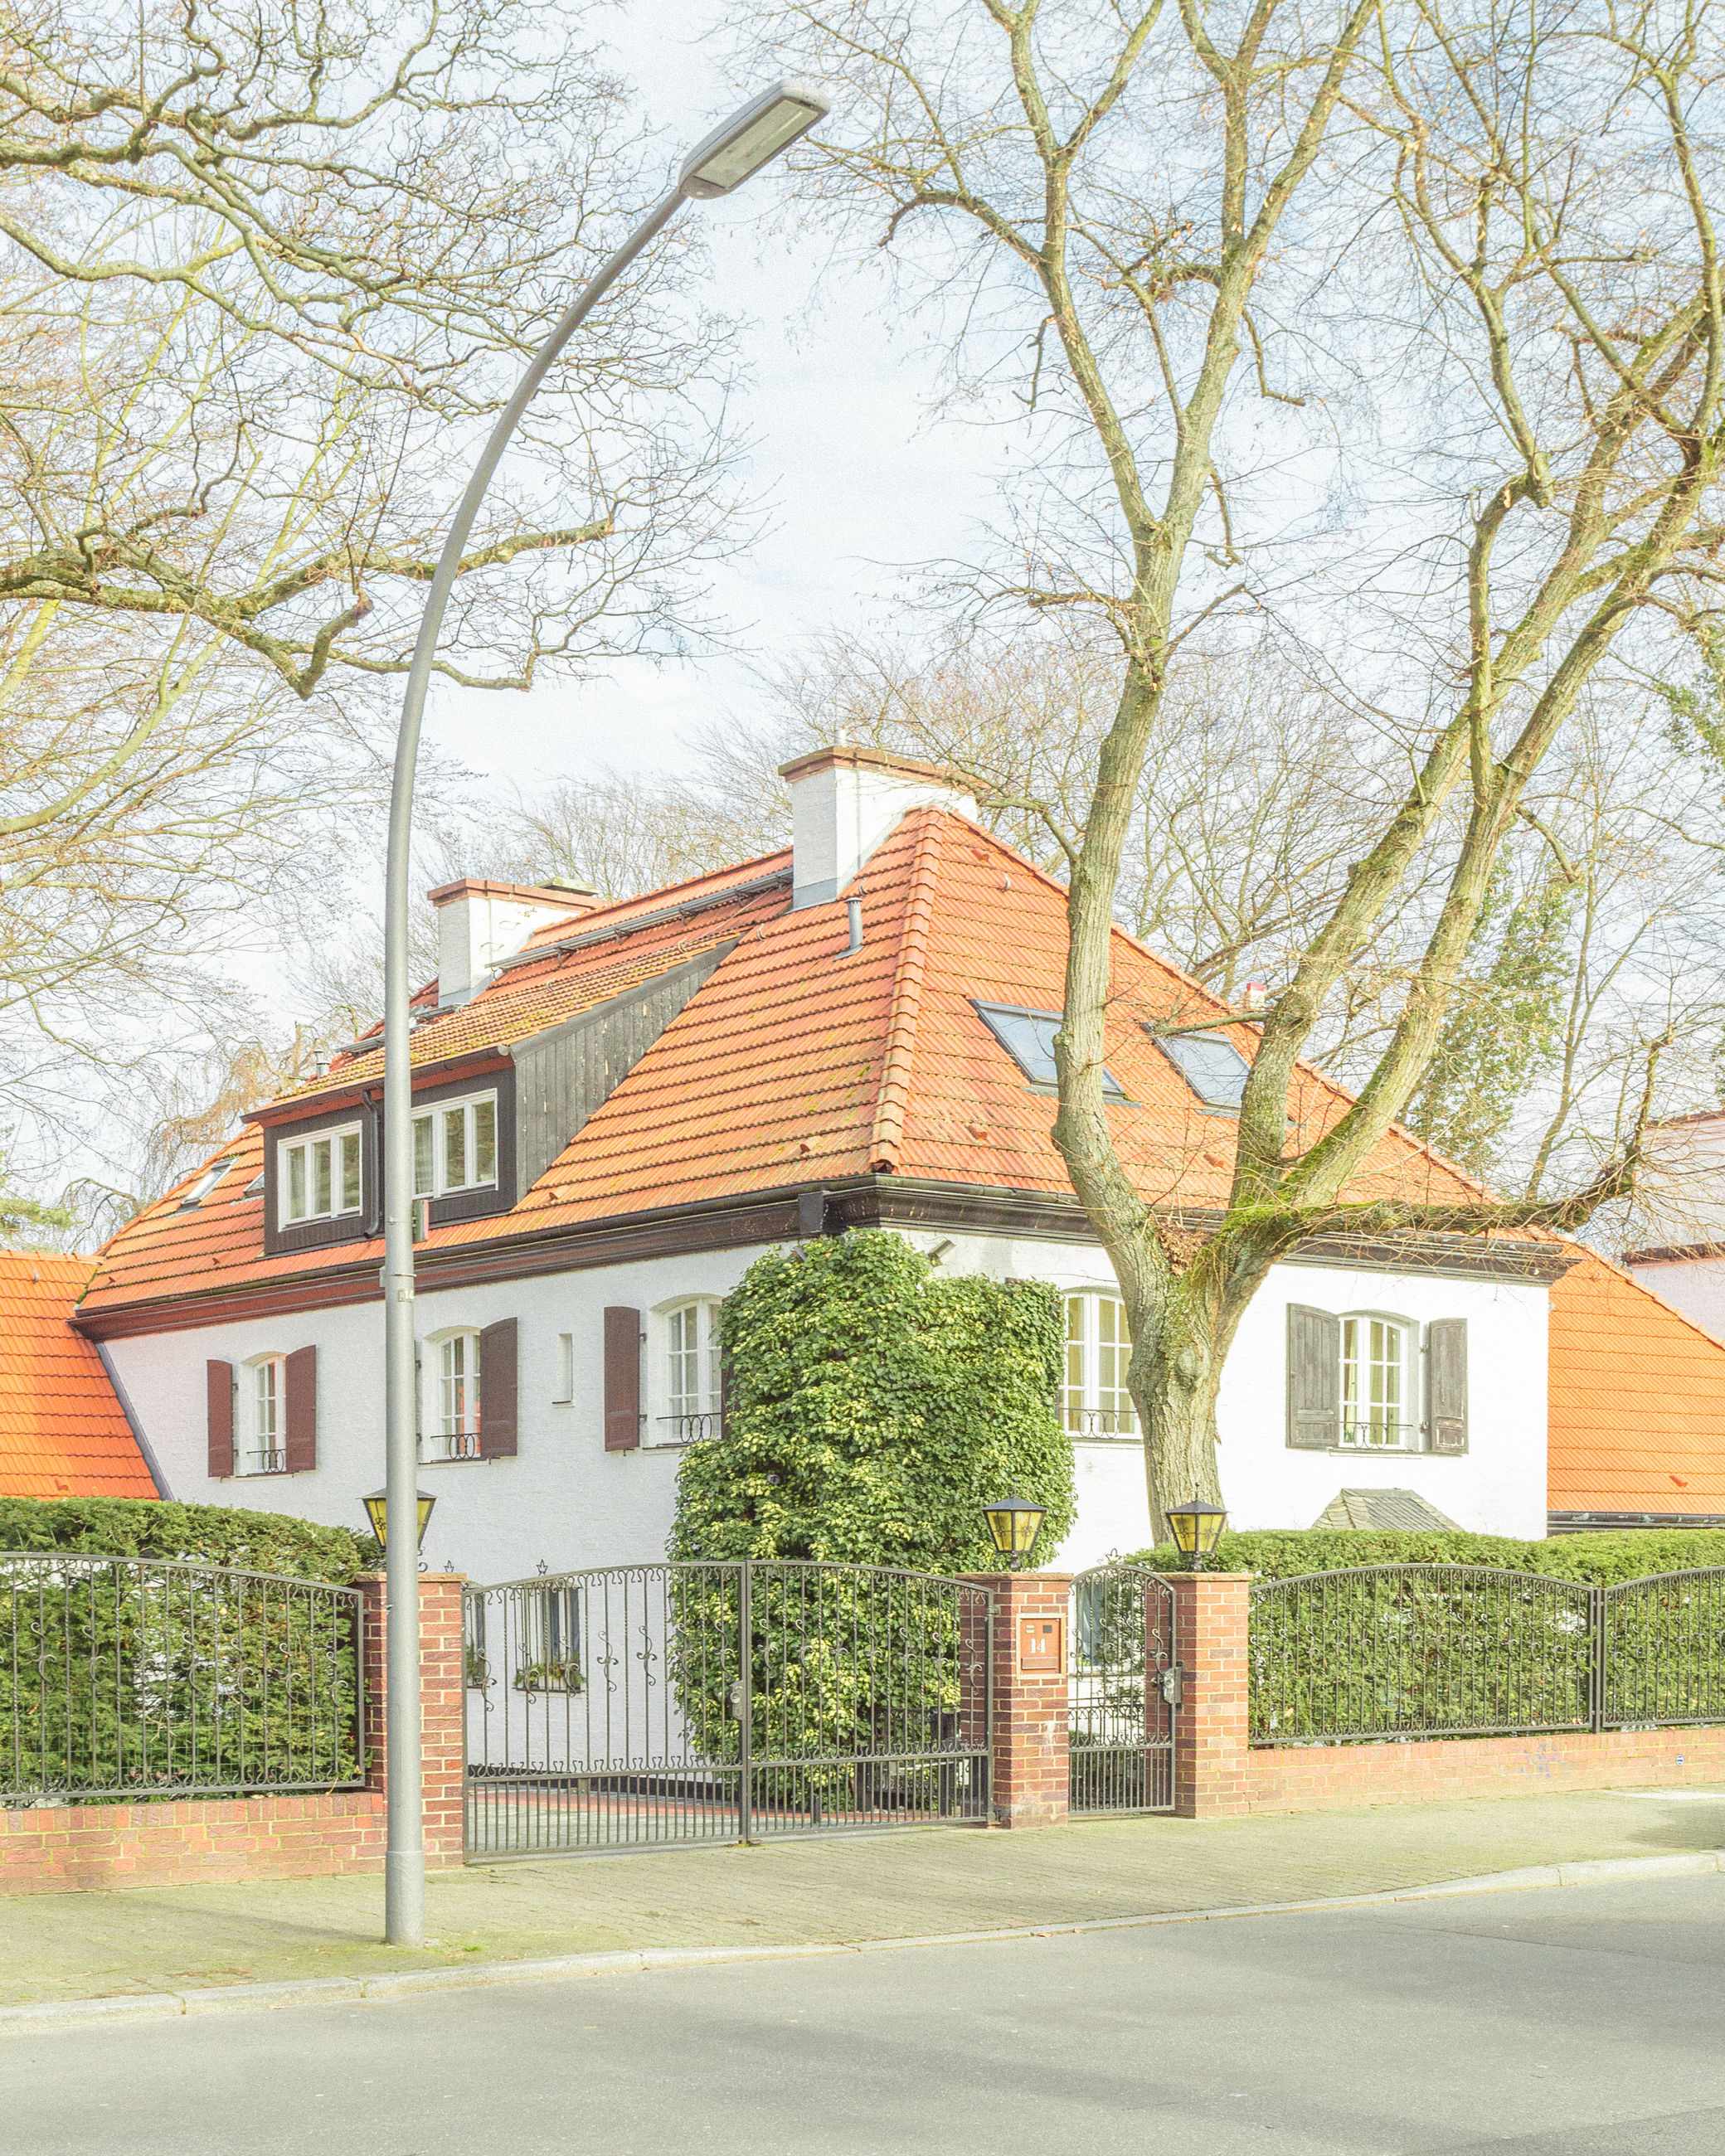 architecture, building exterior, built structure, building, tree, plant, house, residential district, nature, no people, day, window, outdoors, roof, growth, bare tree, road, city, branch, sky, housing development